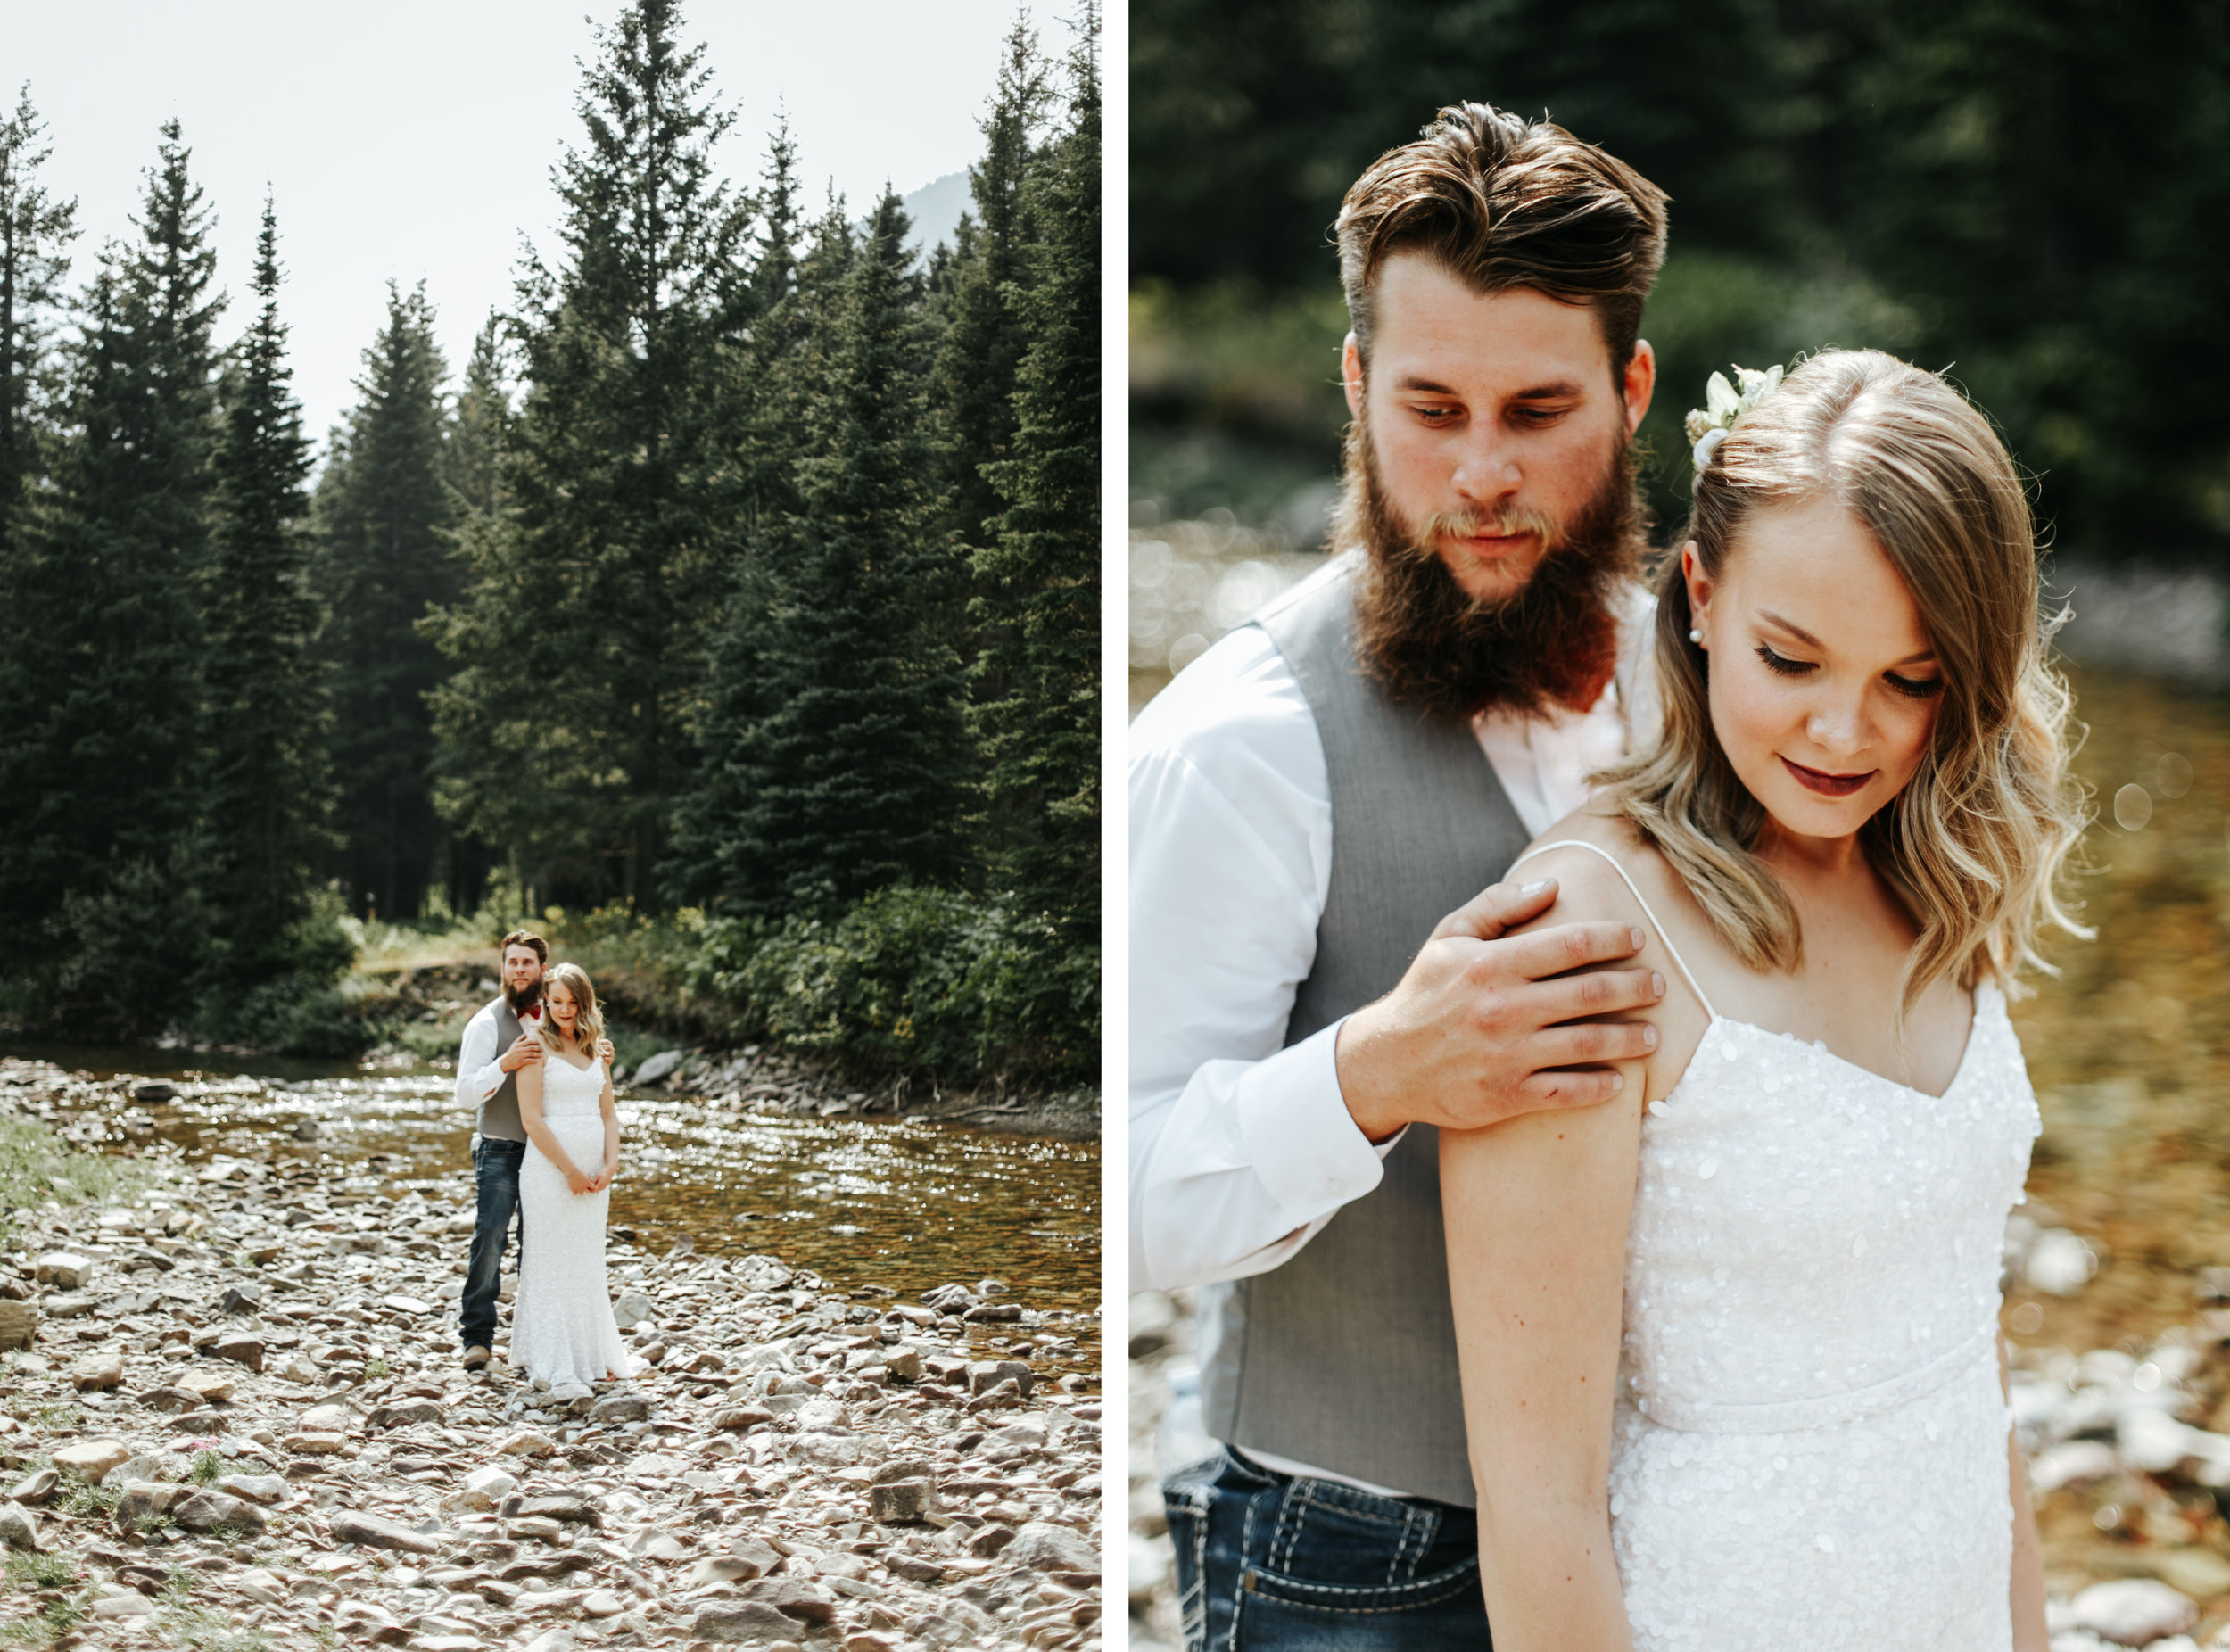 castle-mountain-wedding-photographer-love-and-be-loved-photography-lethbridge-pincher-creek-crowsnest-pass-yannick-rylee-photo-image-picture-124.jpg